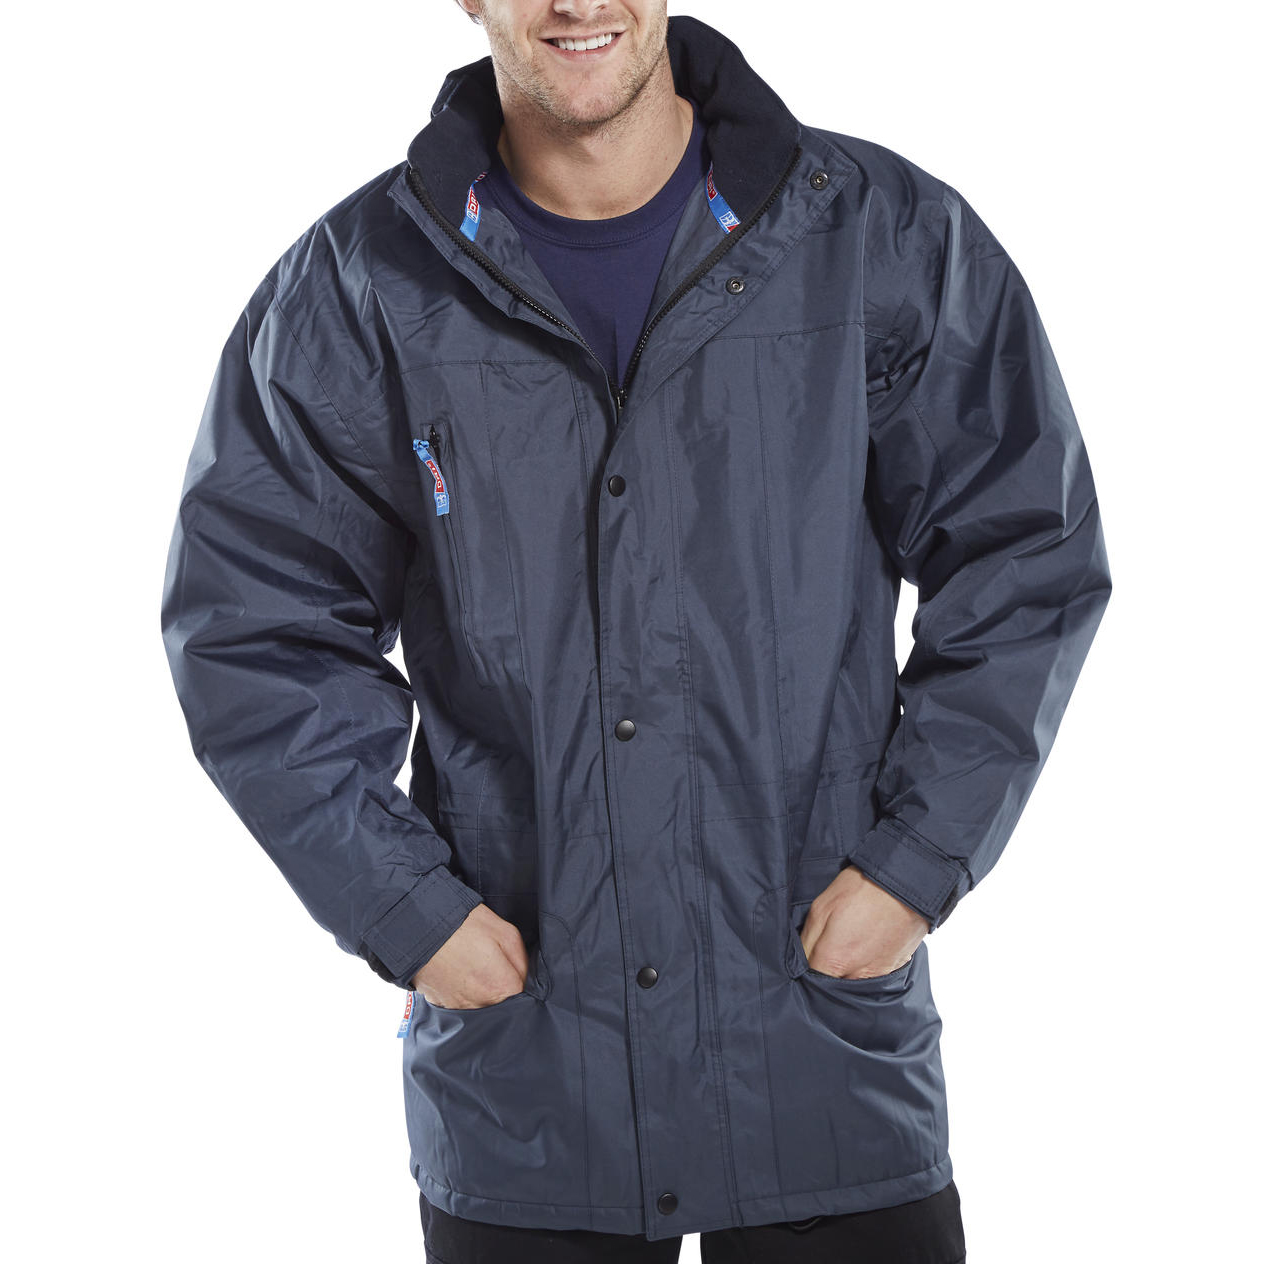 B-Dri Weatherproof Guardian Jacket with Concealed Hood 2XL Navy Blue Ref GU88PNXXL *Up to 3 Day Leadtime*